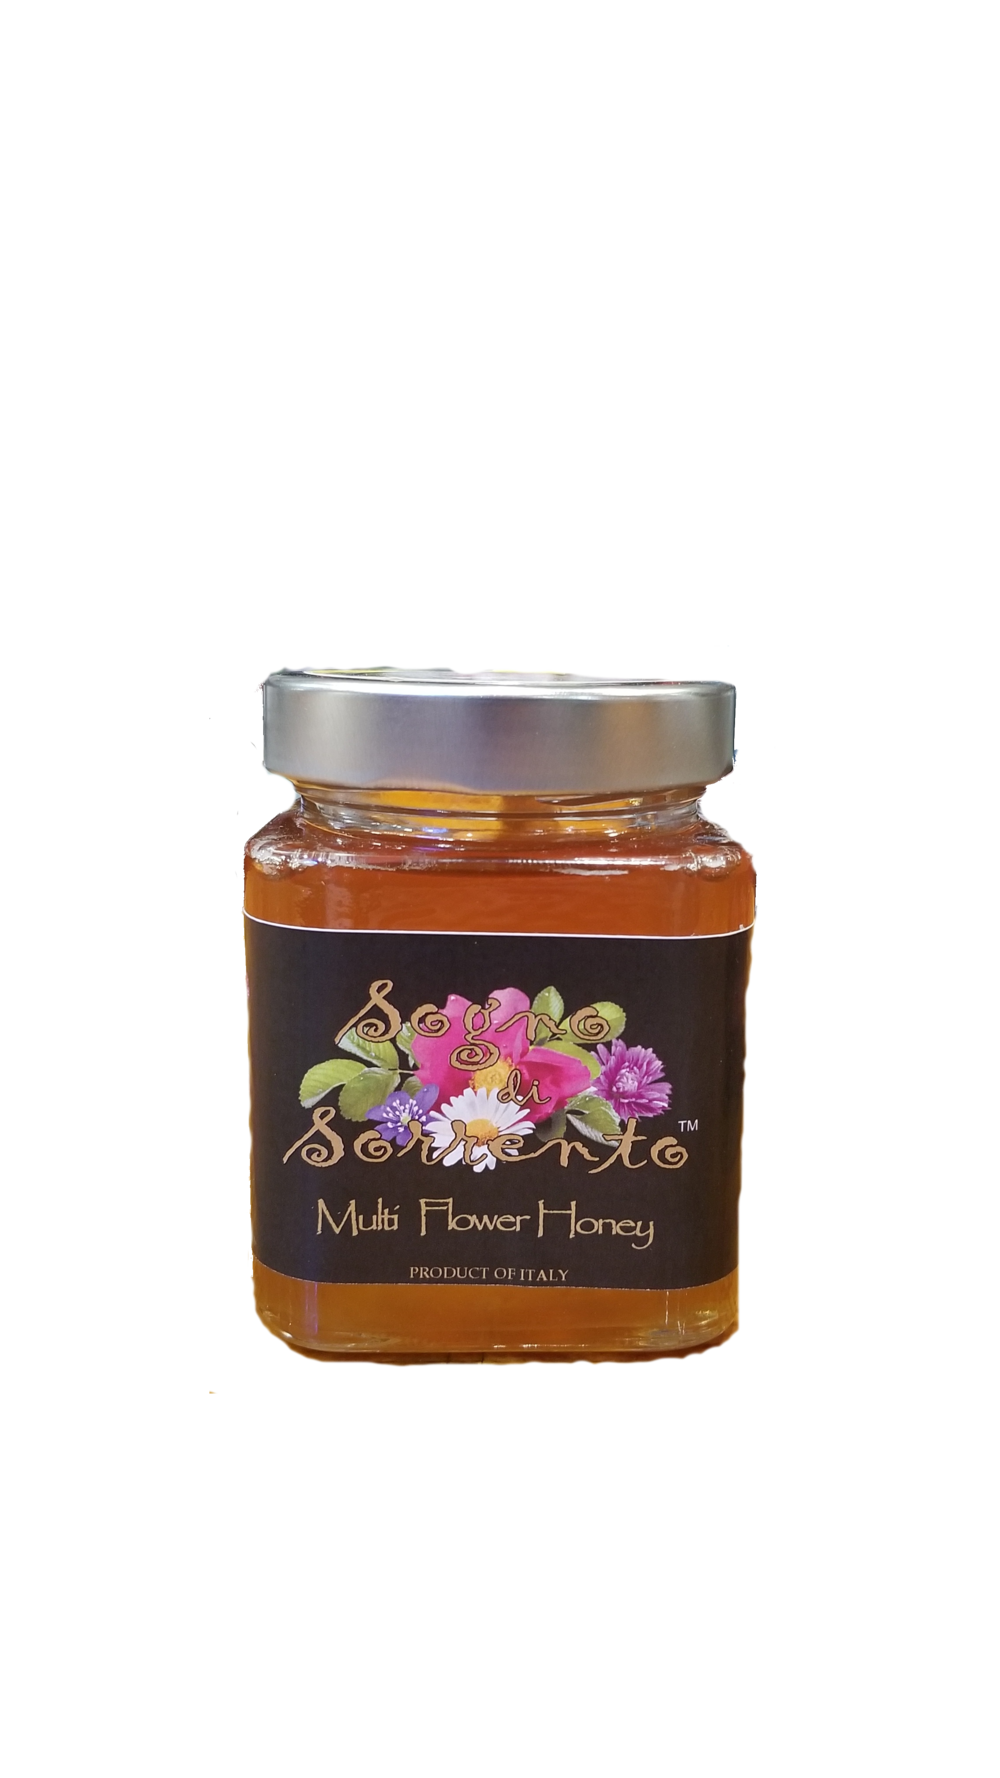 Sogno Multi Flower Honey.png